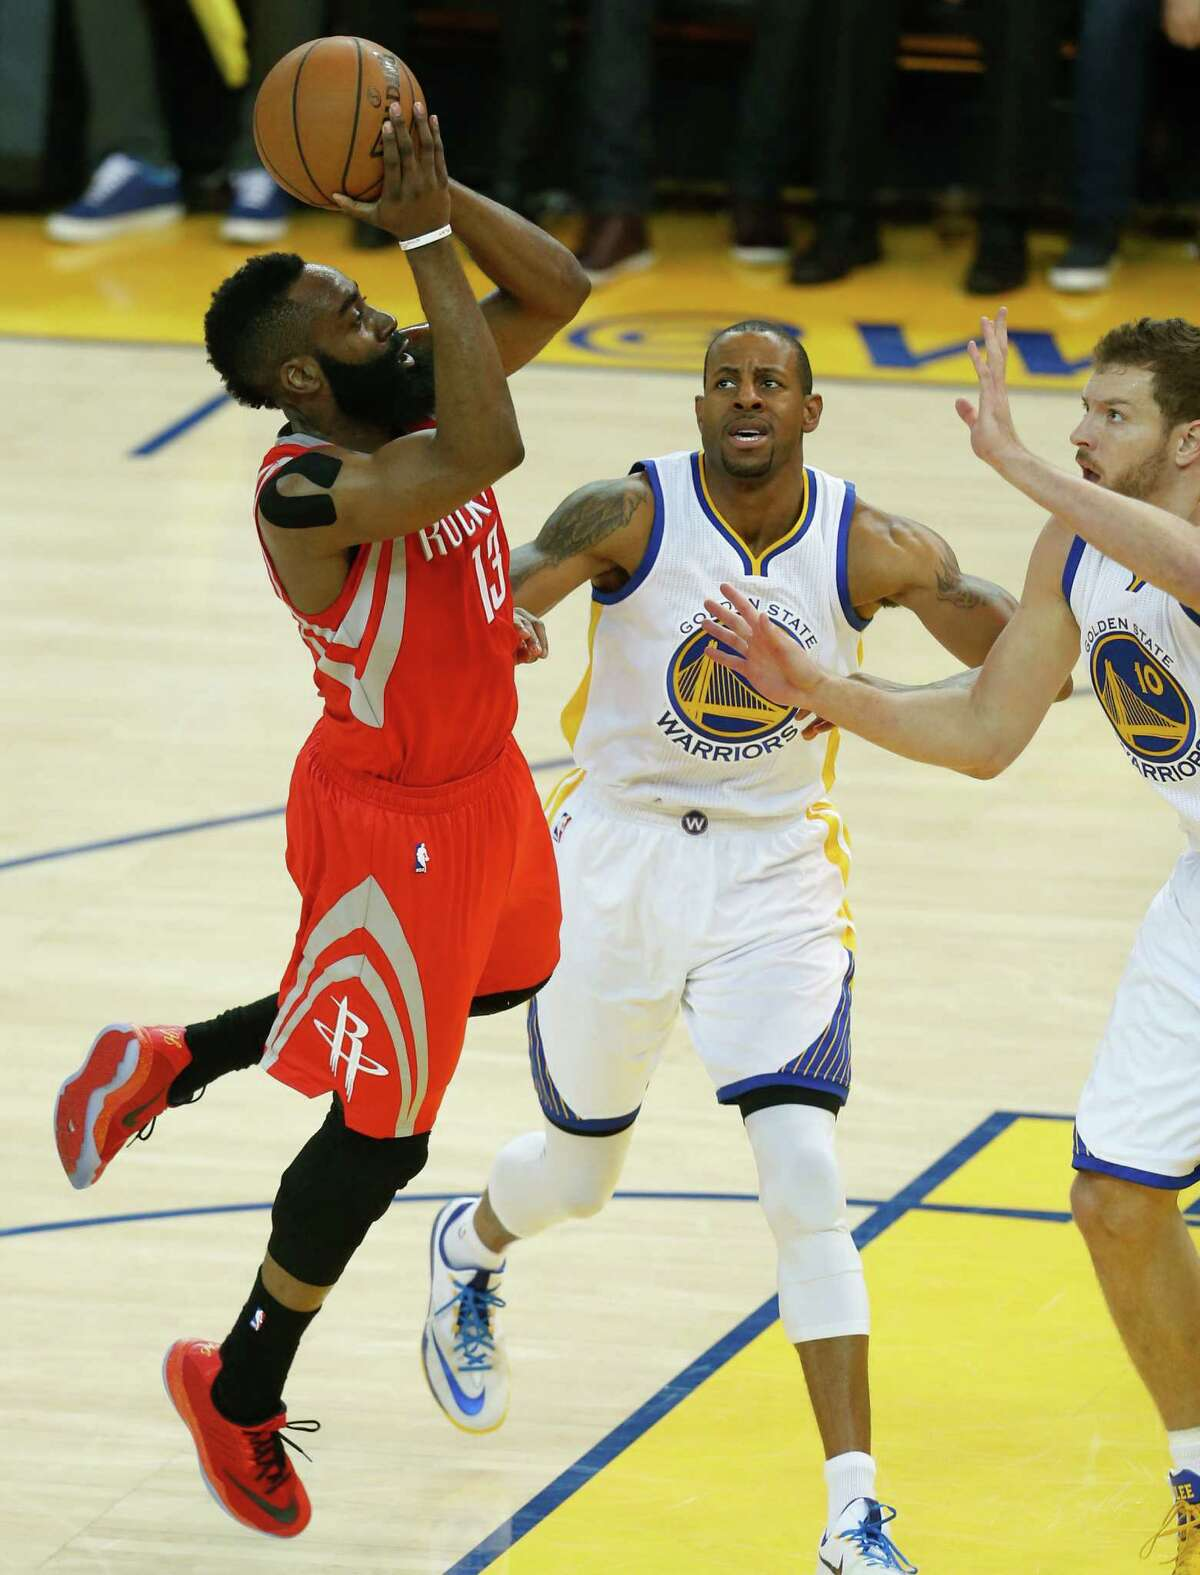 Rockets guard James Harden, left, shoots over the Warriors' Draymond Green, center, and David Lee to score two of his 28 points in Tuesday night's game.